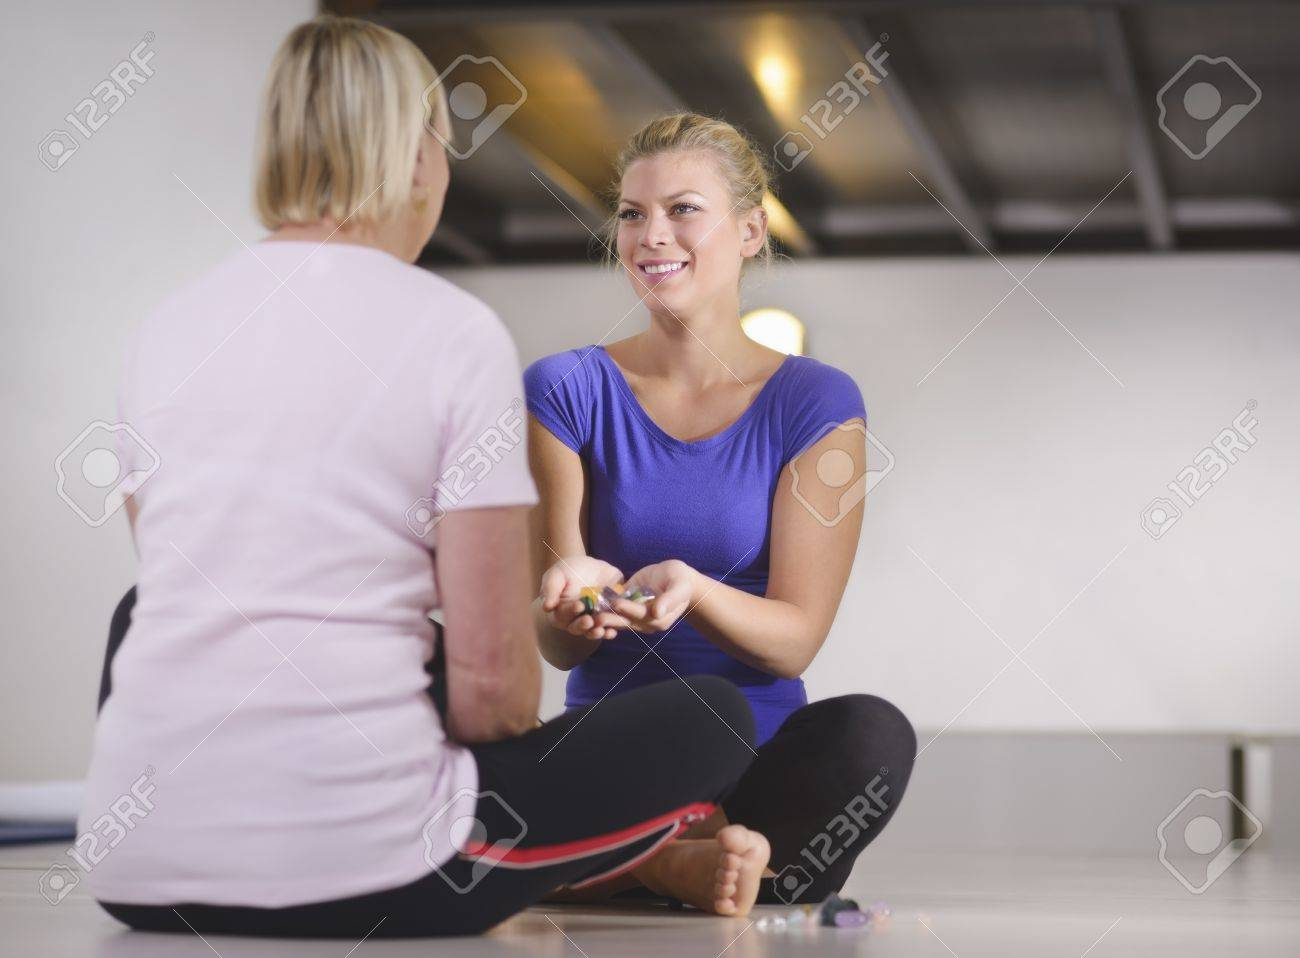 Alternative medicine, pain healing and women, young therapist choosing crystals for reiki therapy with client. Full length, copy space Stock Photo - 16523108